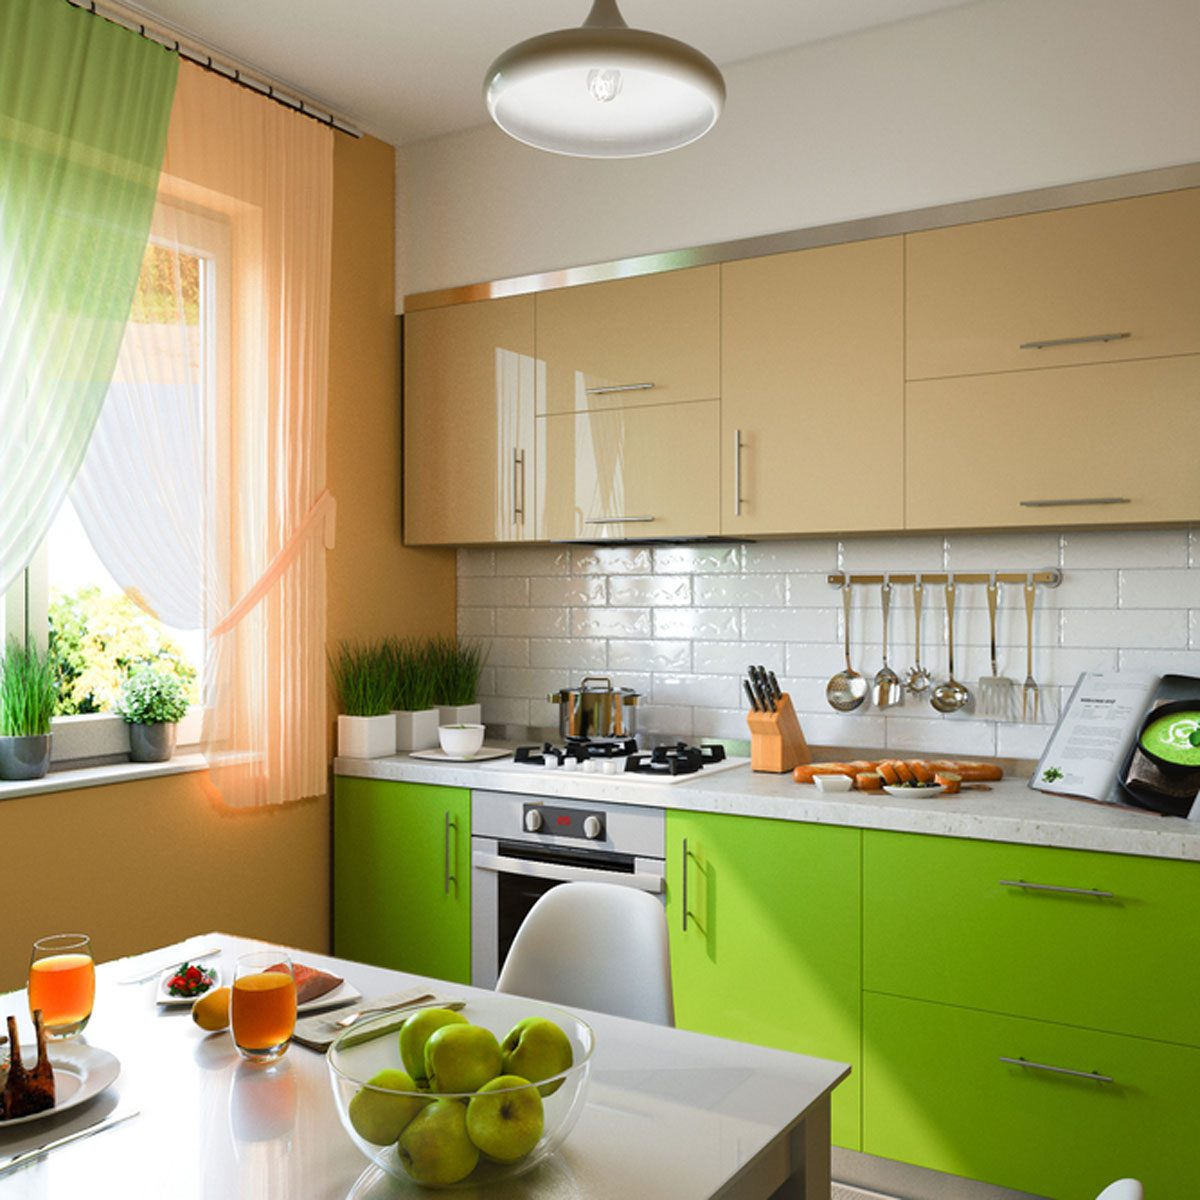 12 Kitchen Color Trends That Are Hot Right Now The